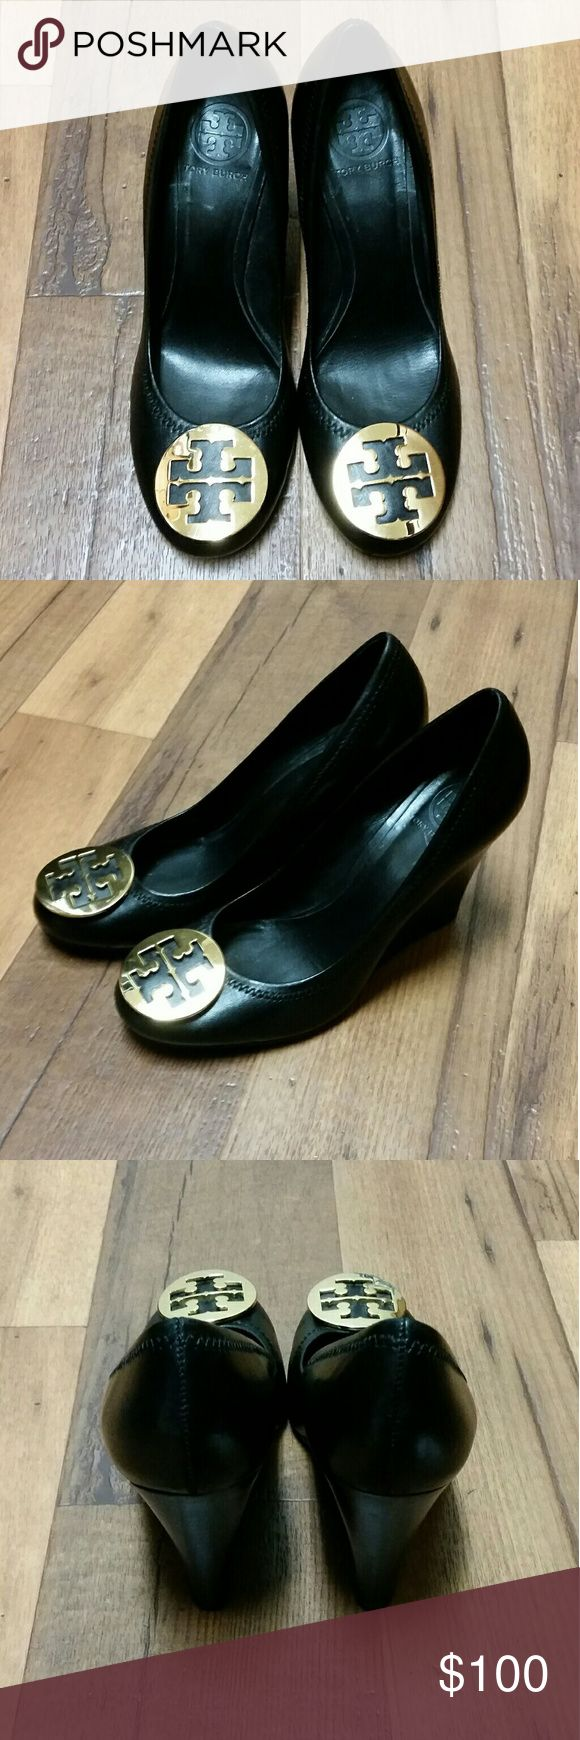 TORY BURCH SIZE 9 Gently used. Size 9. Made in Brazil. Minor signs